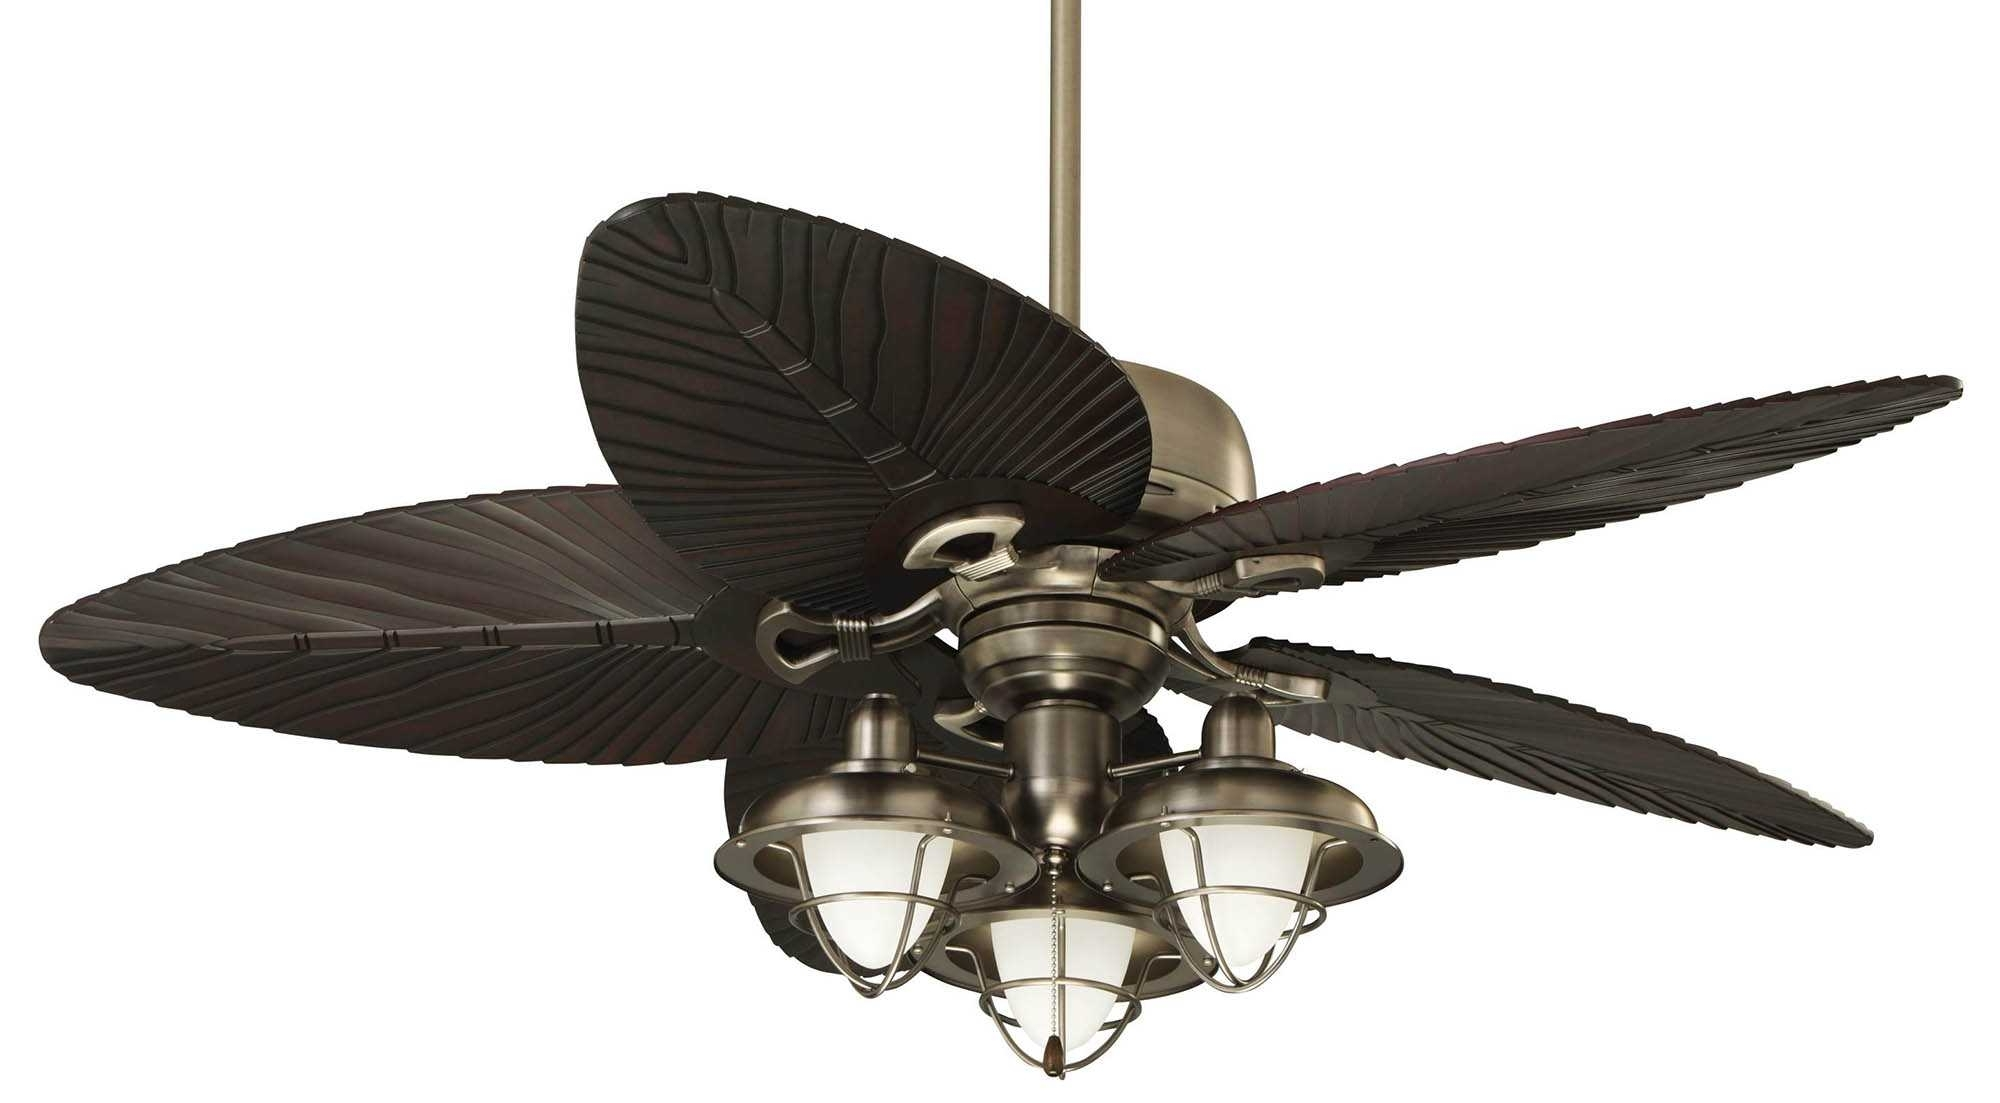 Ceiling Fan ~ Tropical Outdoor Ceiling Fans Withts Gallery Palm Leaf Regarding Most Current Outdoor Ceiling Fans With Tropical Lights (Gallery 11 of 20)